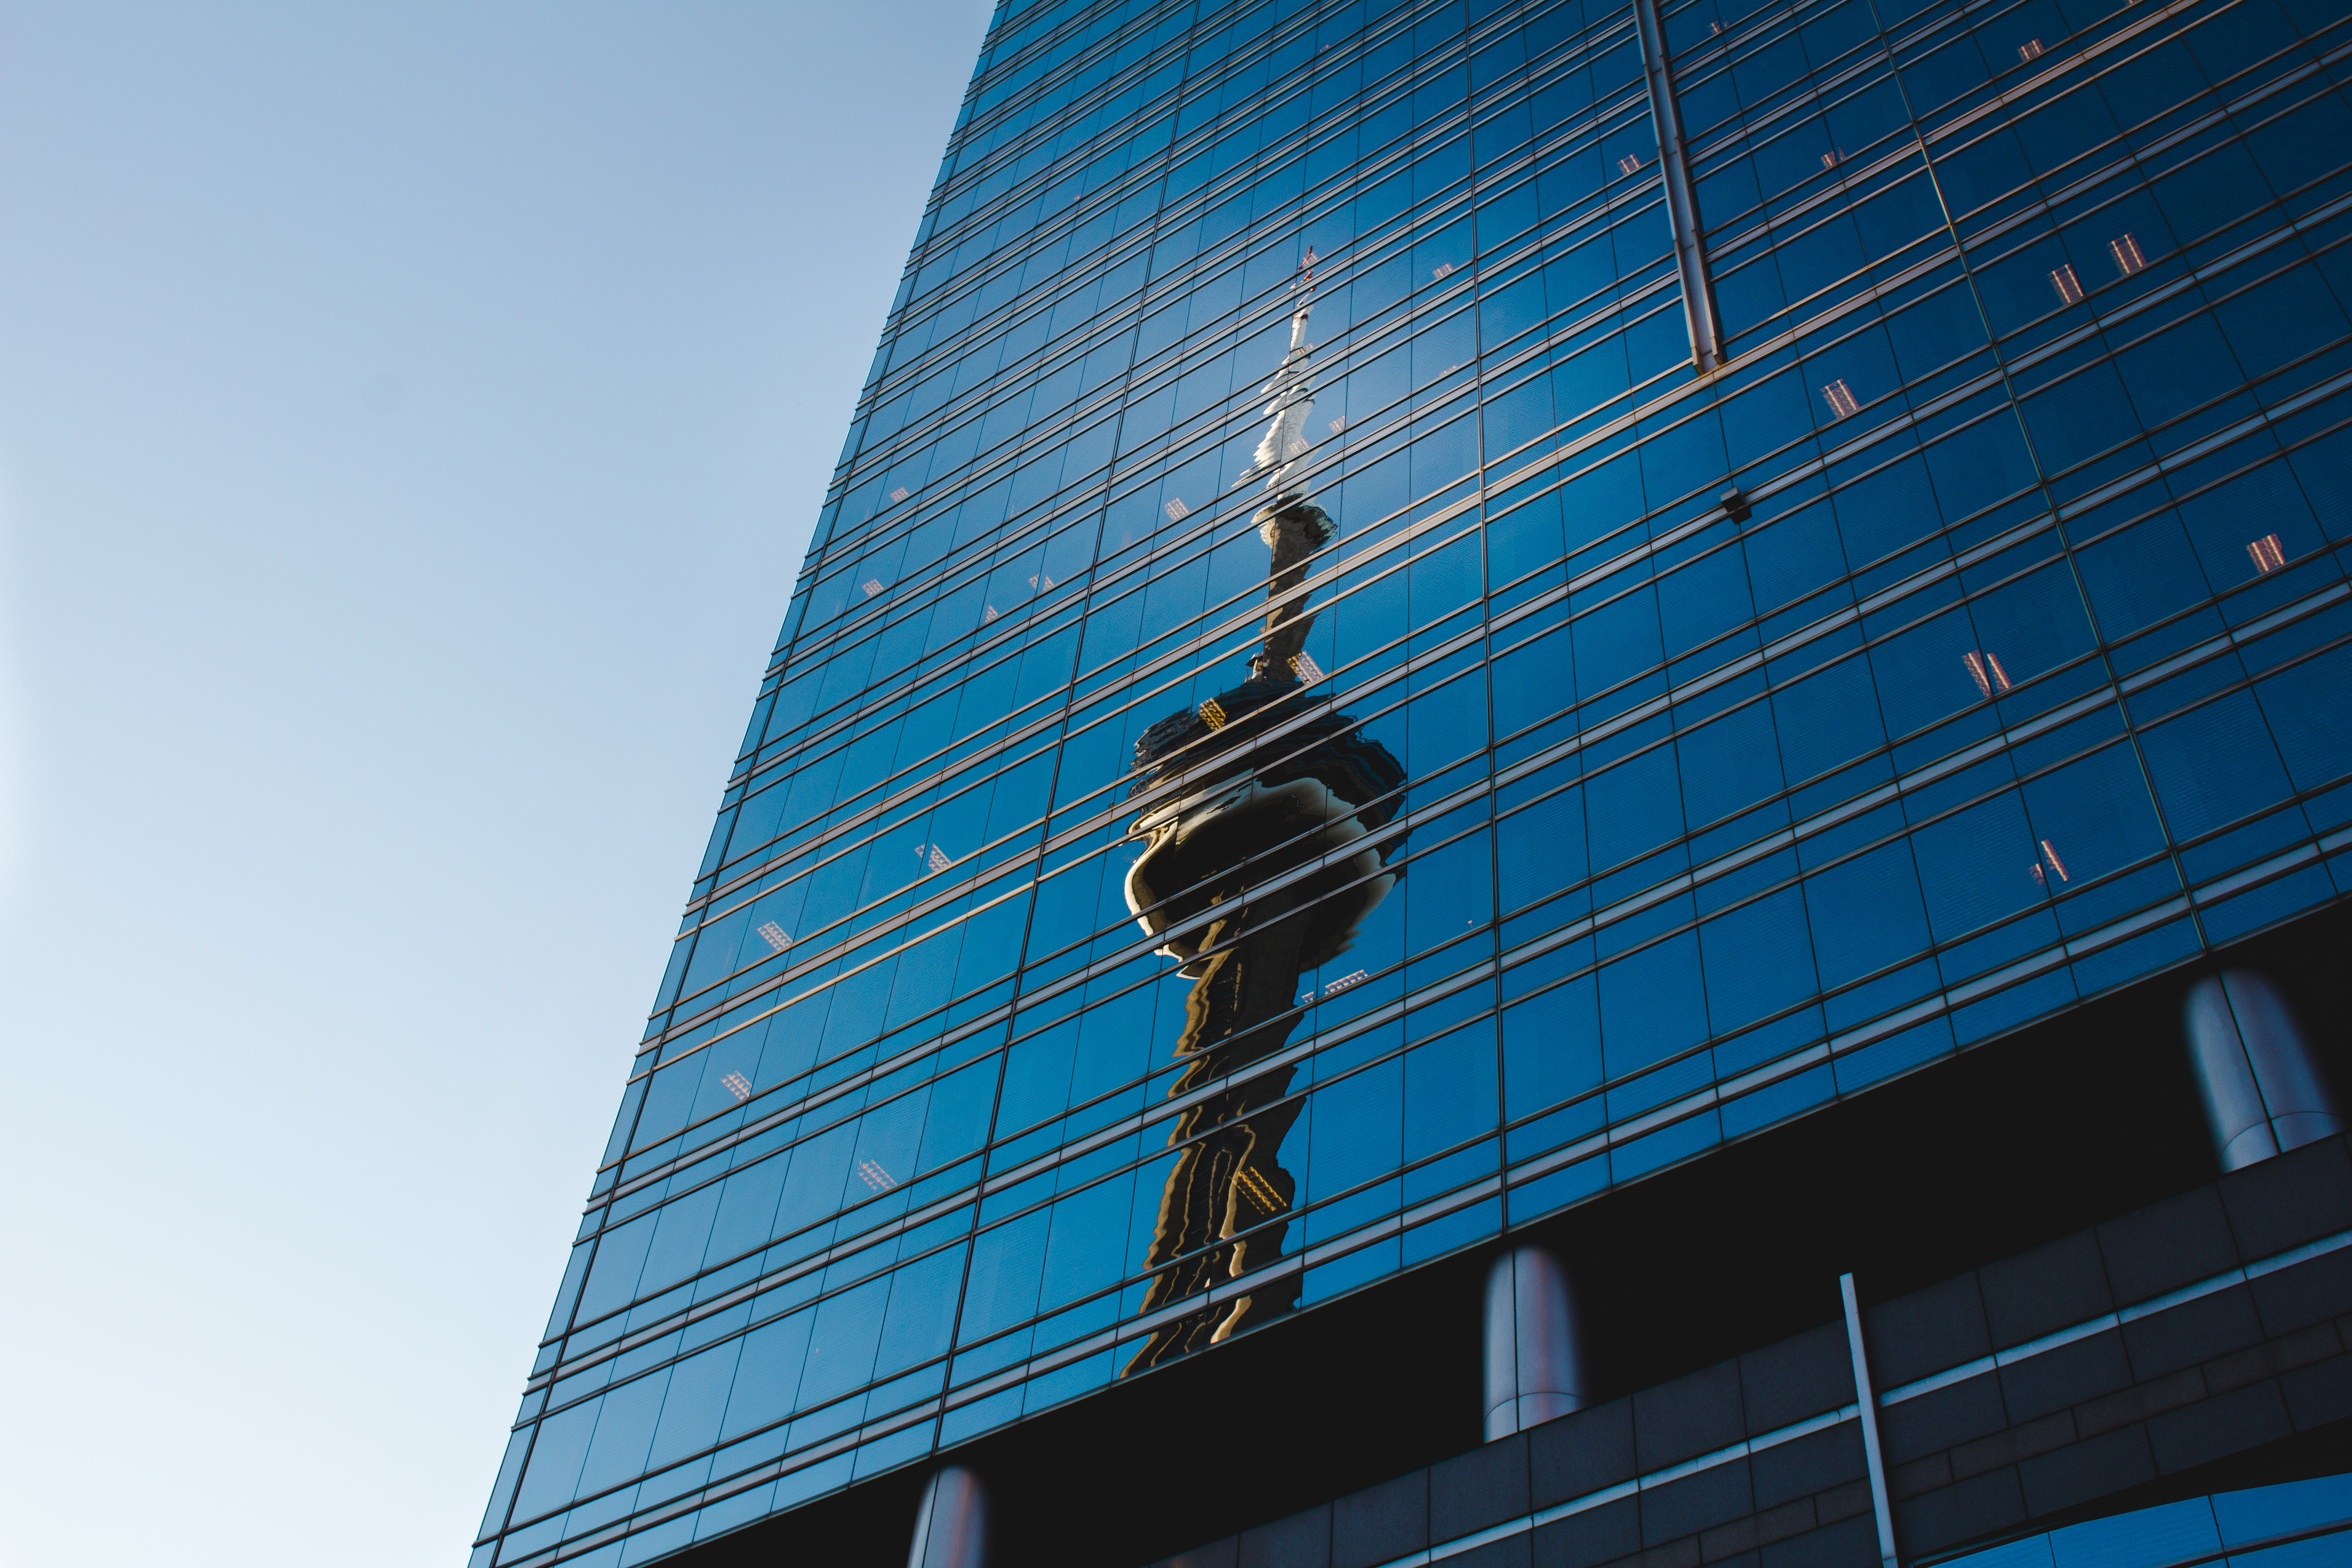 Reflection of CN tower on glass skyscraper windows in daytime, Toronto